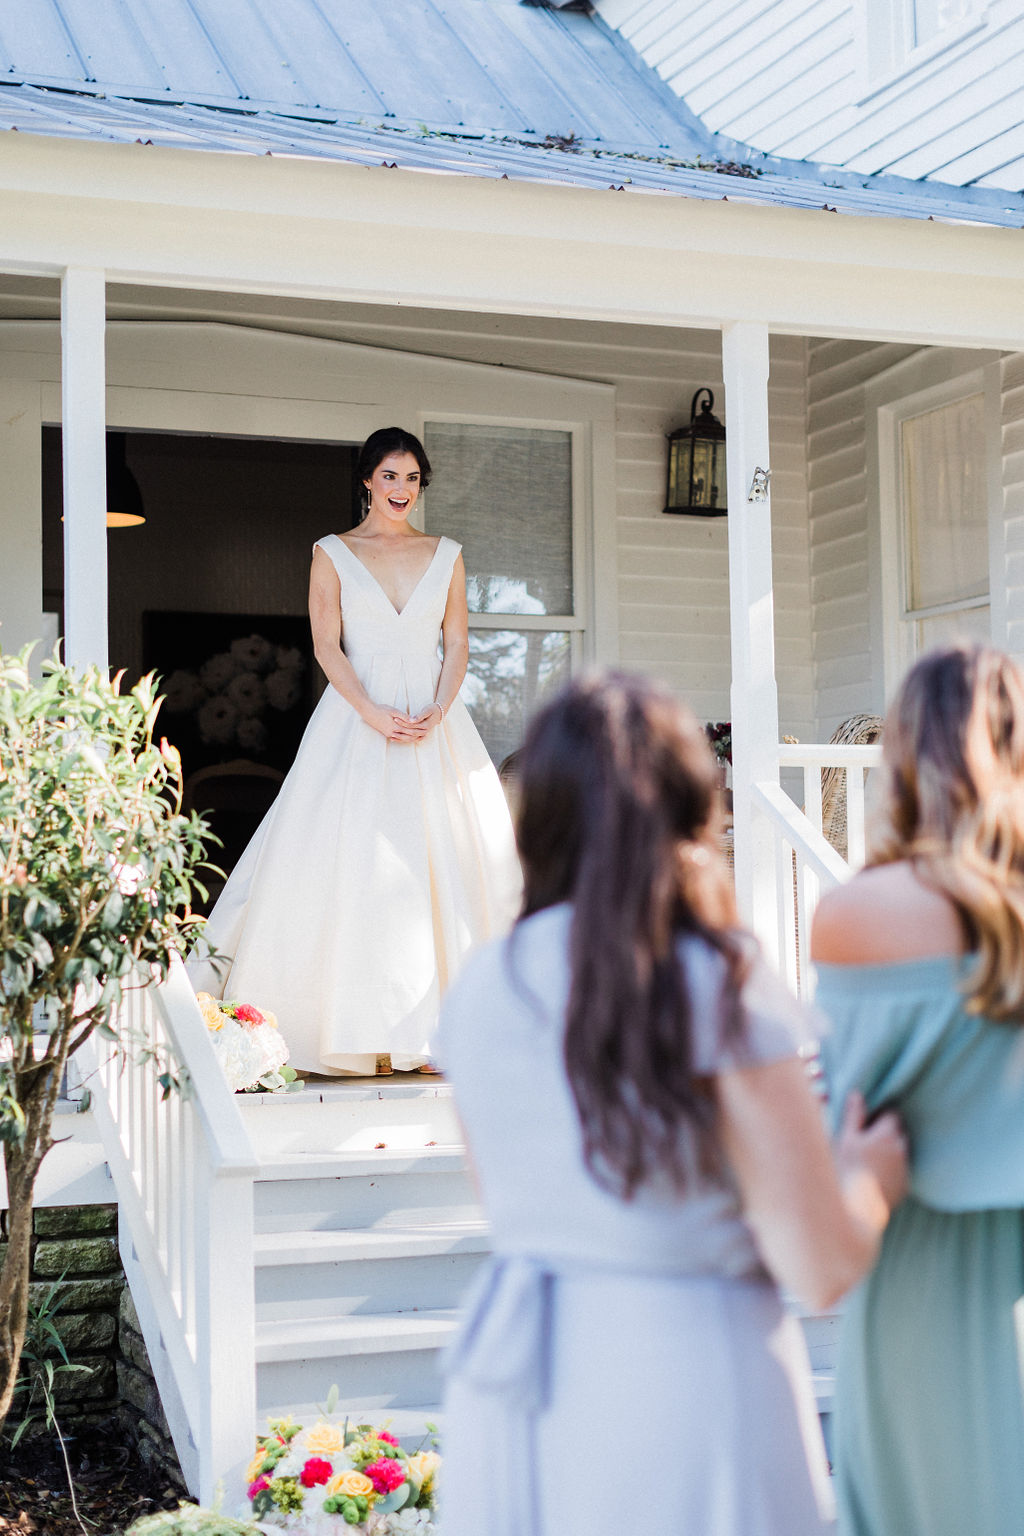 First look with bridesmaids wedding day austin mismatched bridesmaid dress inspiration + destination planner coordinator epoch co + photographer Bonner Rhae photo